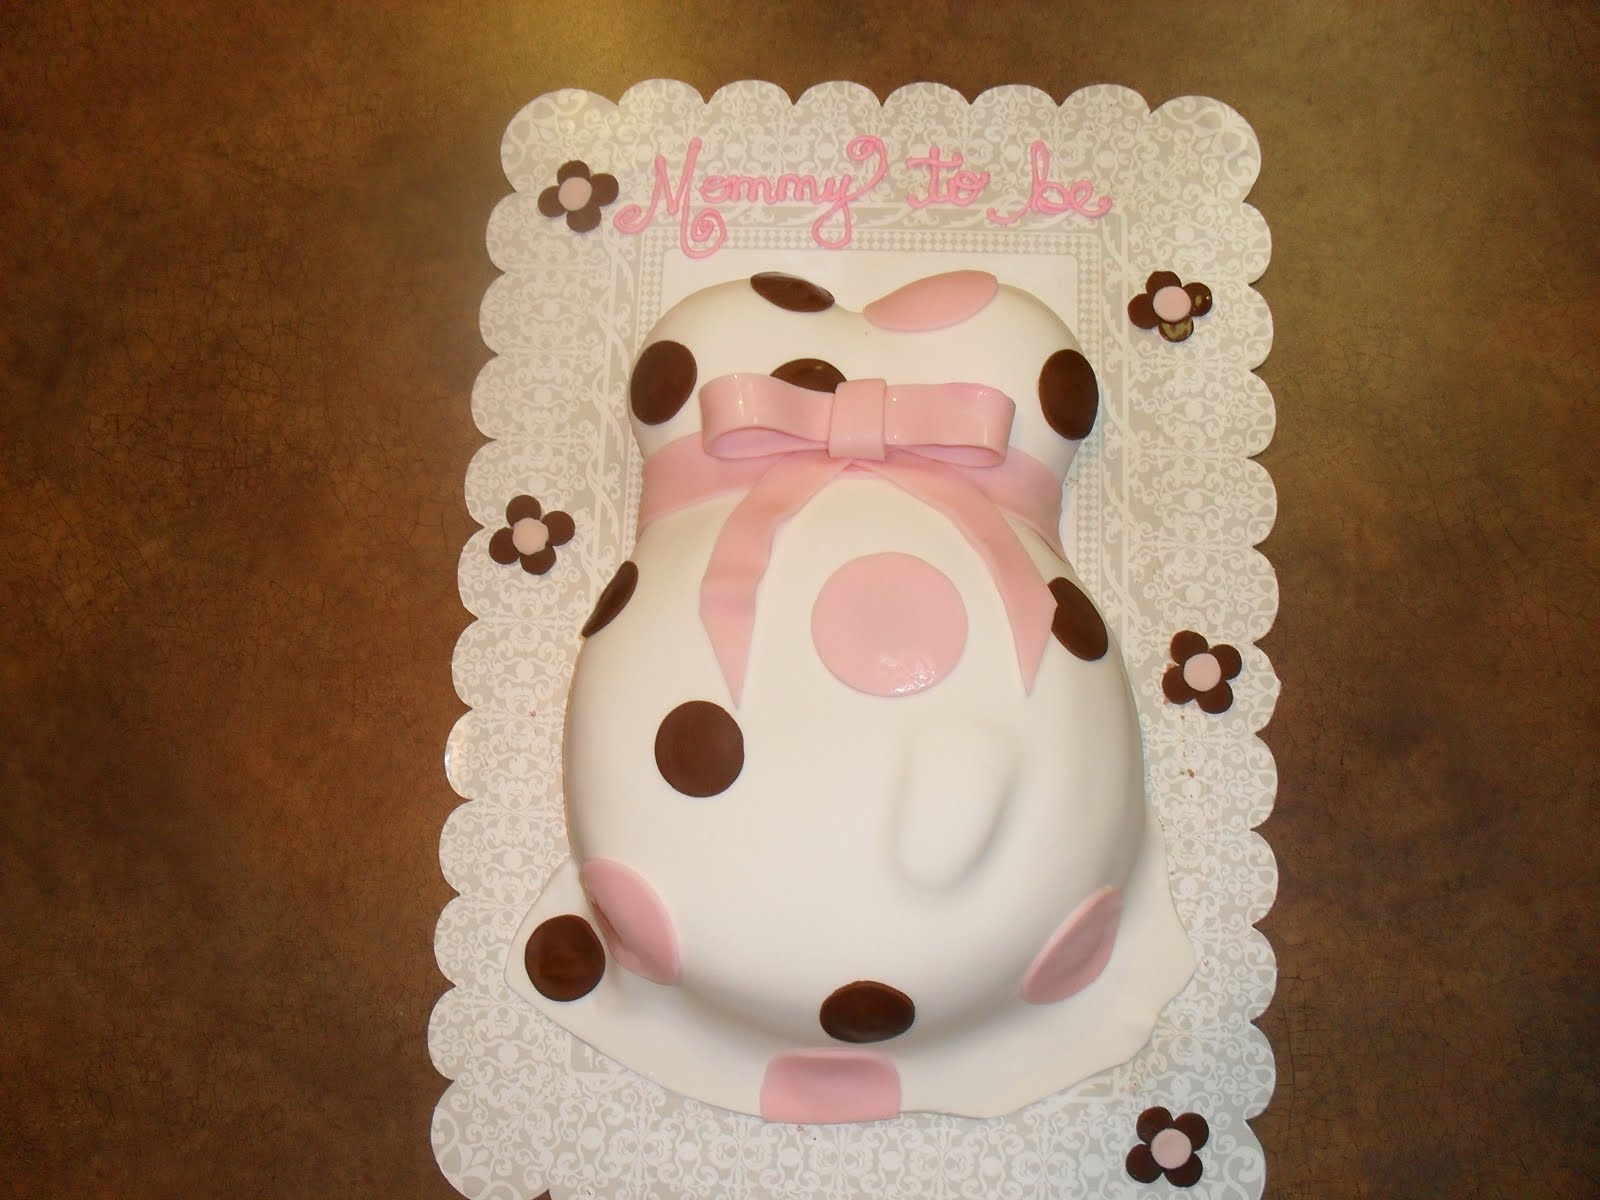 pregnant cake with baby foot